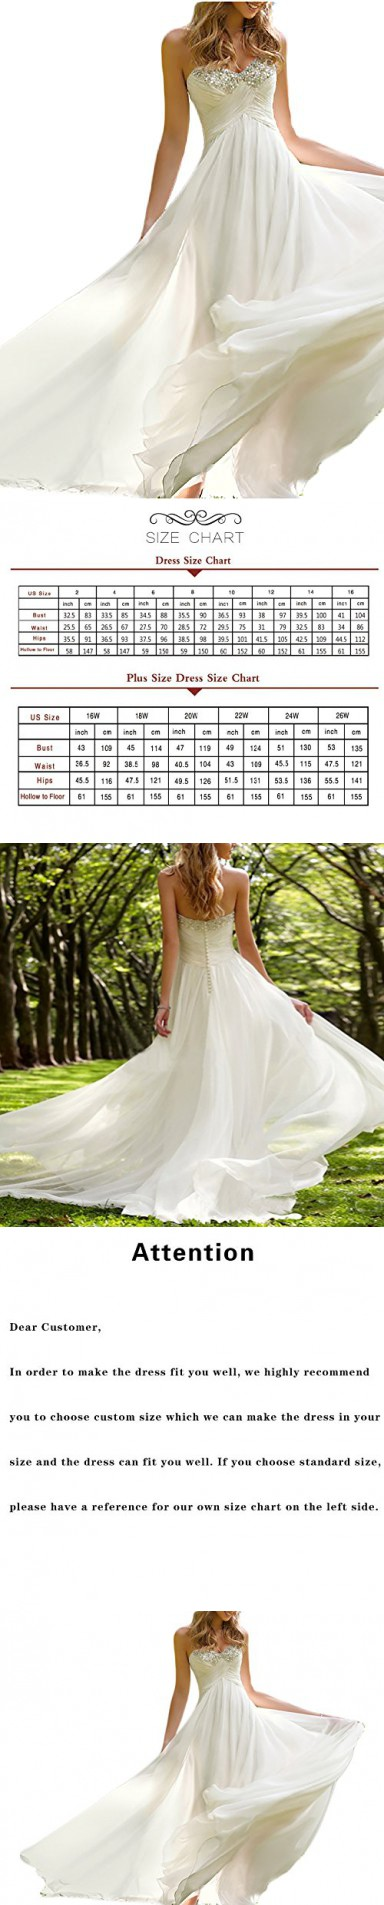 2dd63d49cf7 Favors Dress Women s Sweetheart Beach Wedding Dress Bead Bridal Gown Empire  Ivory ...